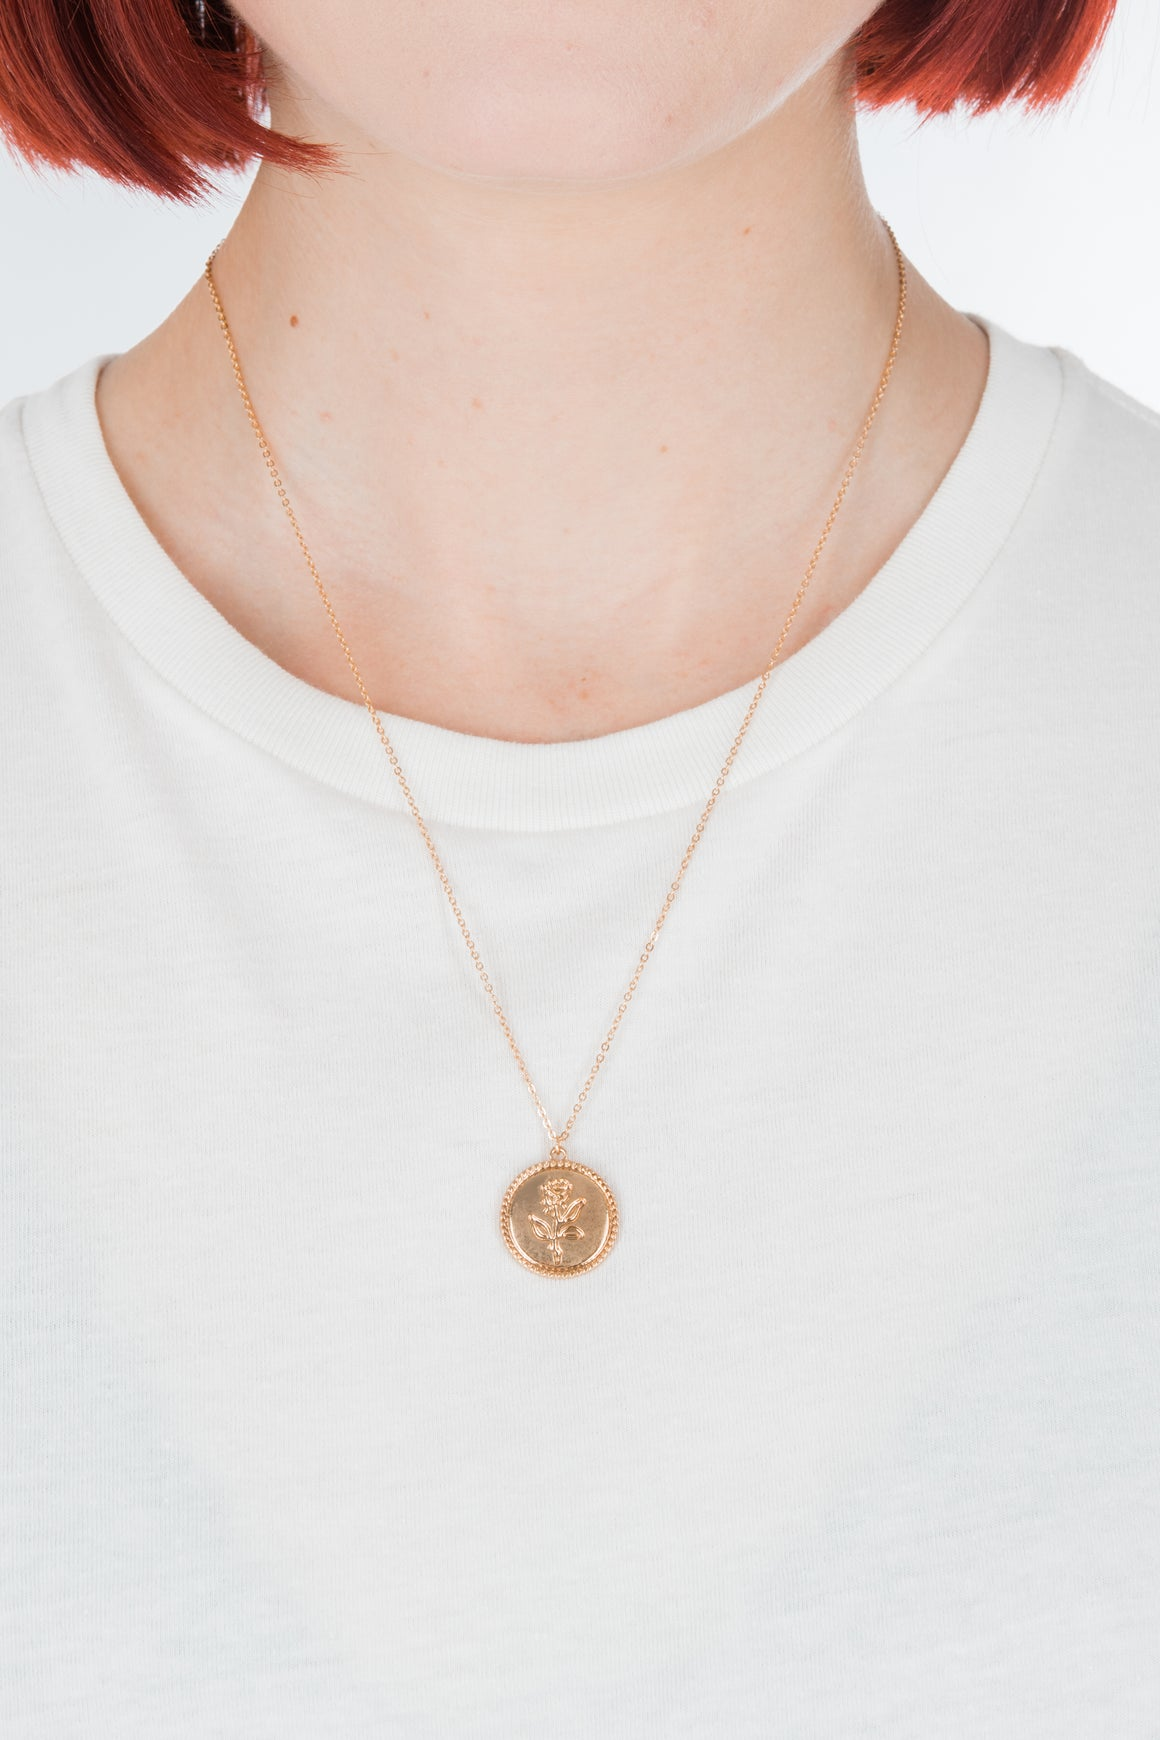 Rose Coin Necklace - Philistine